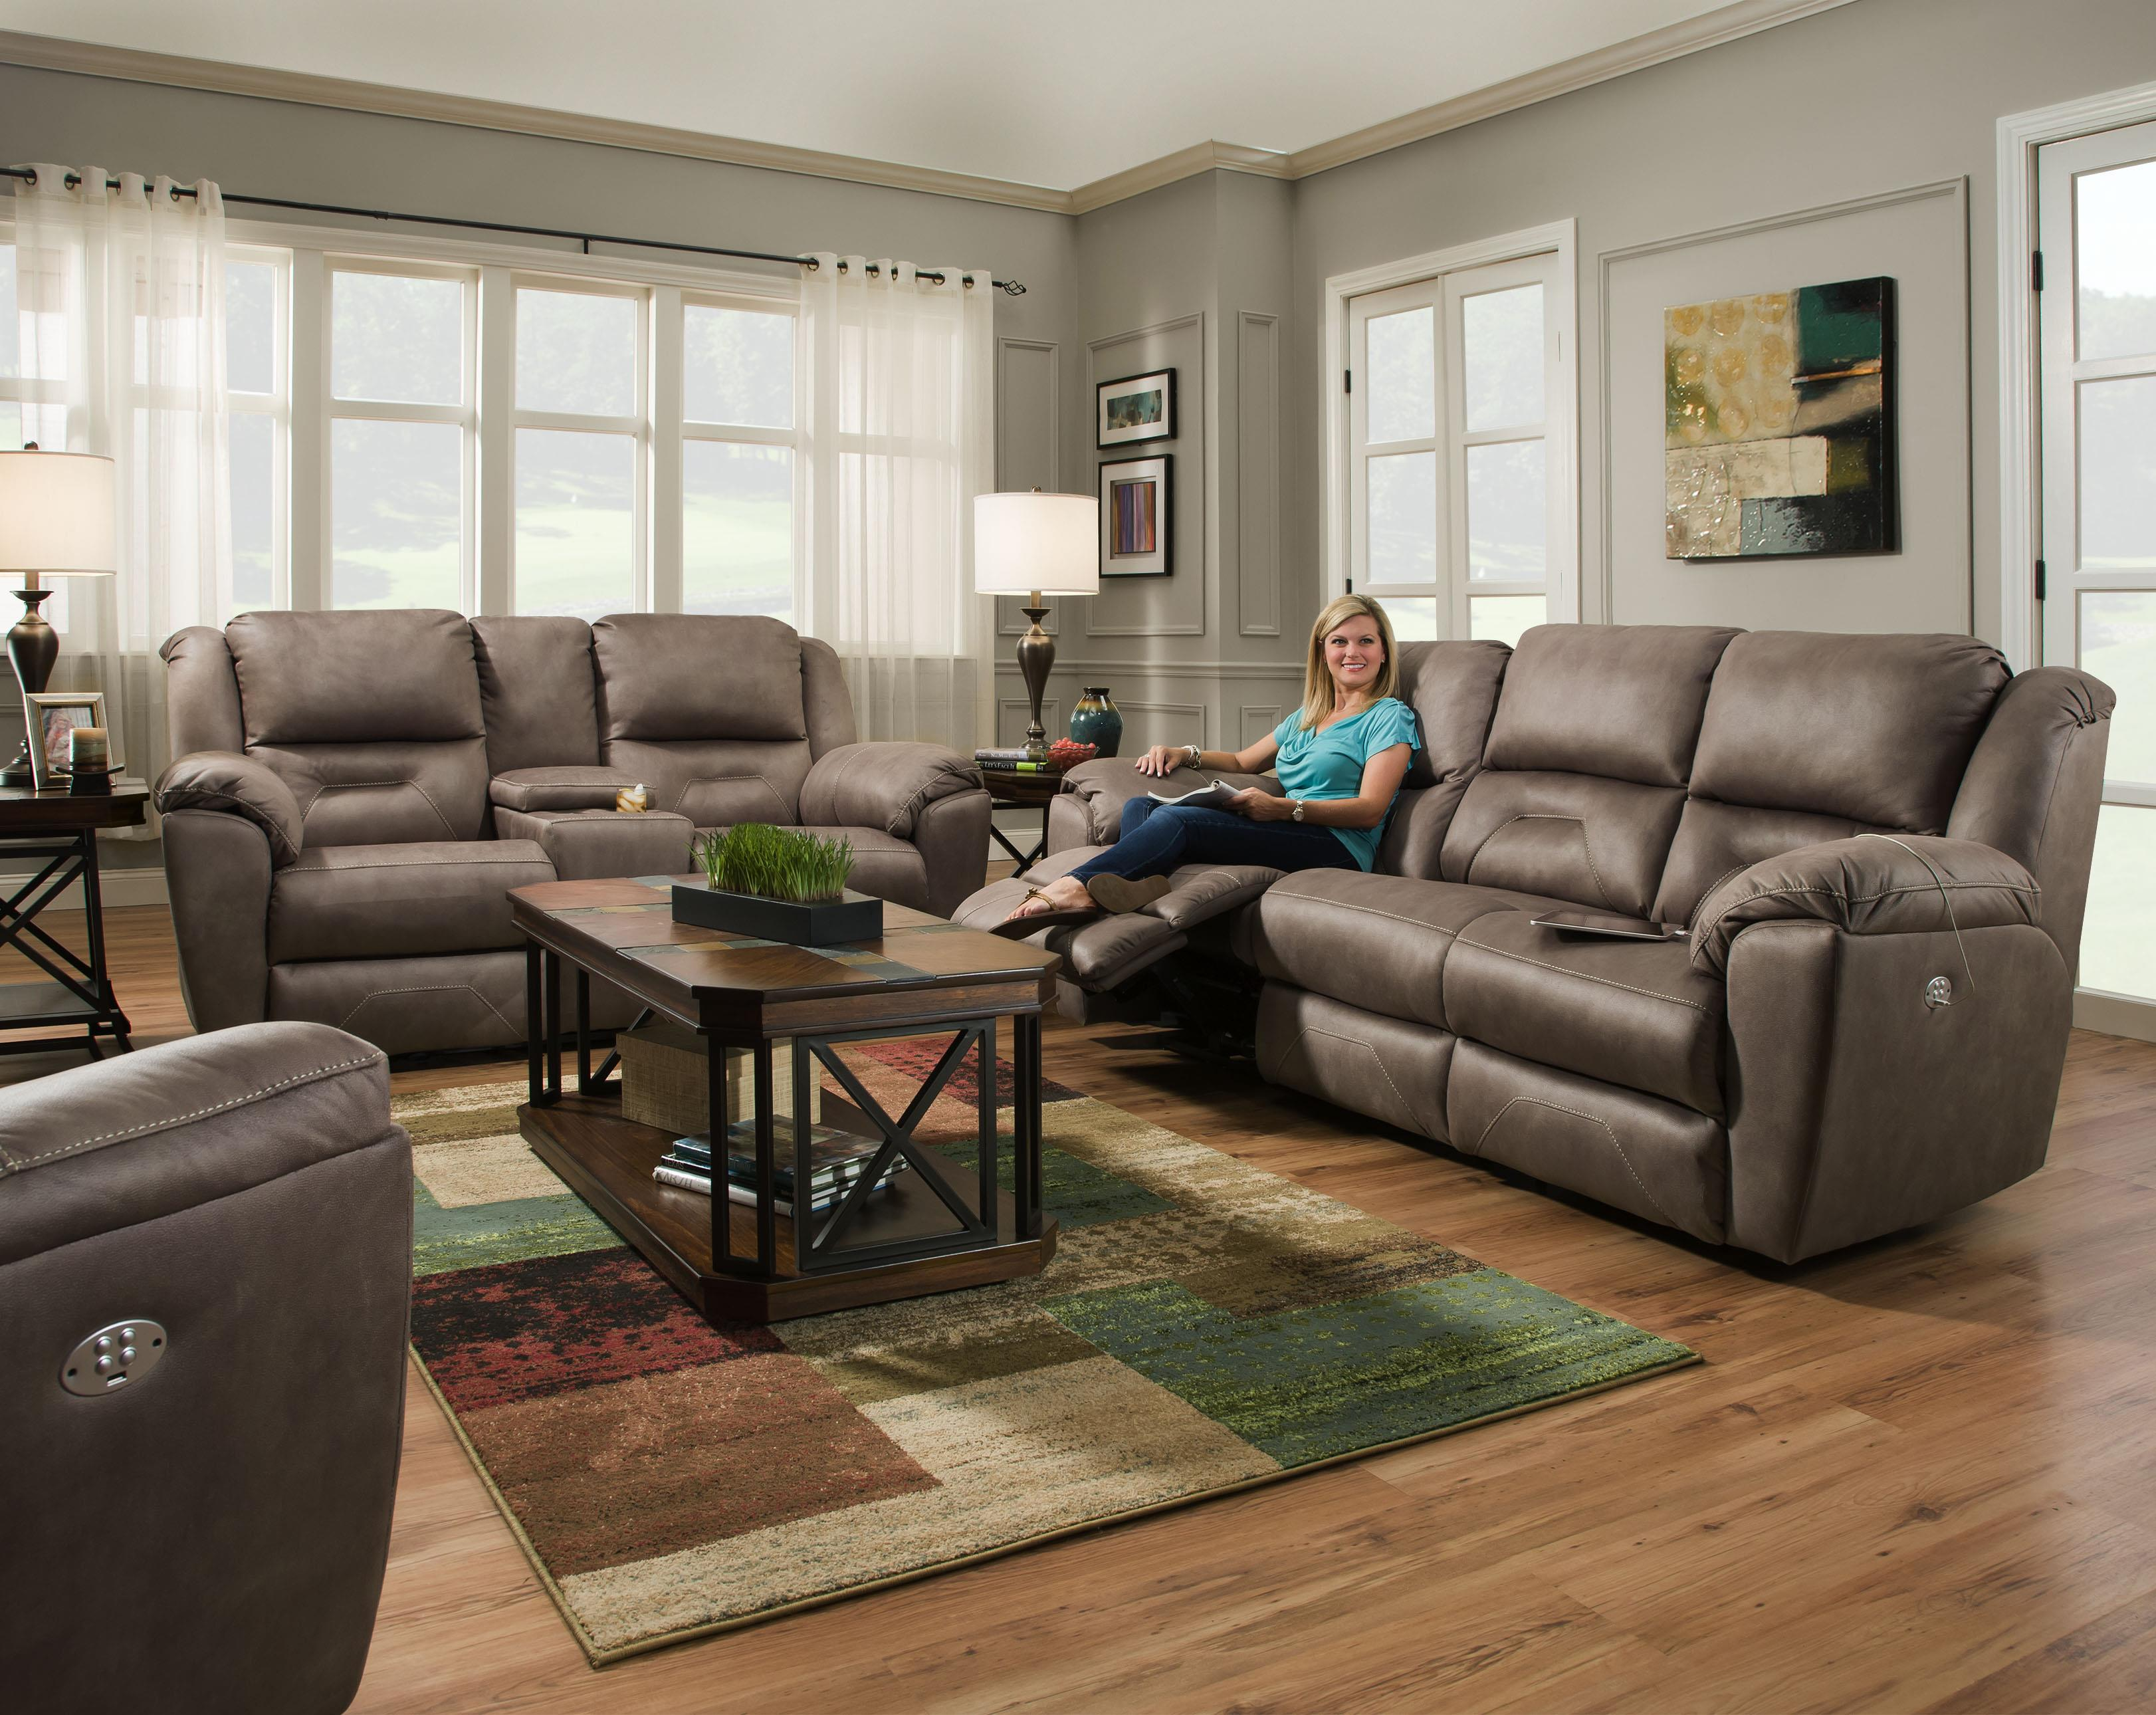 Reclining Sofa With 2 Seats That Recline And Power Headrests